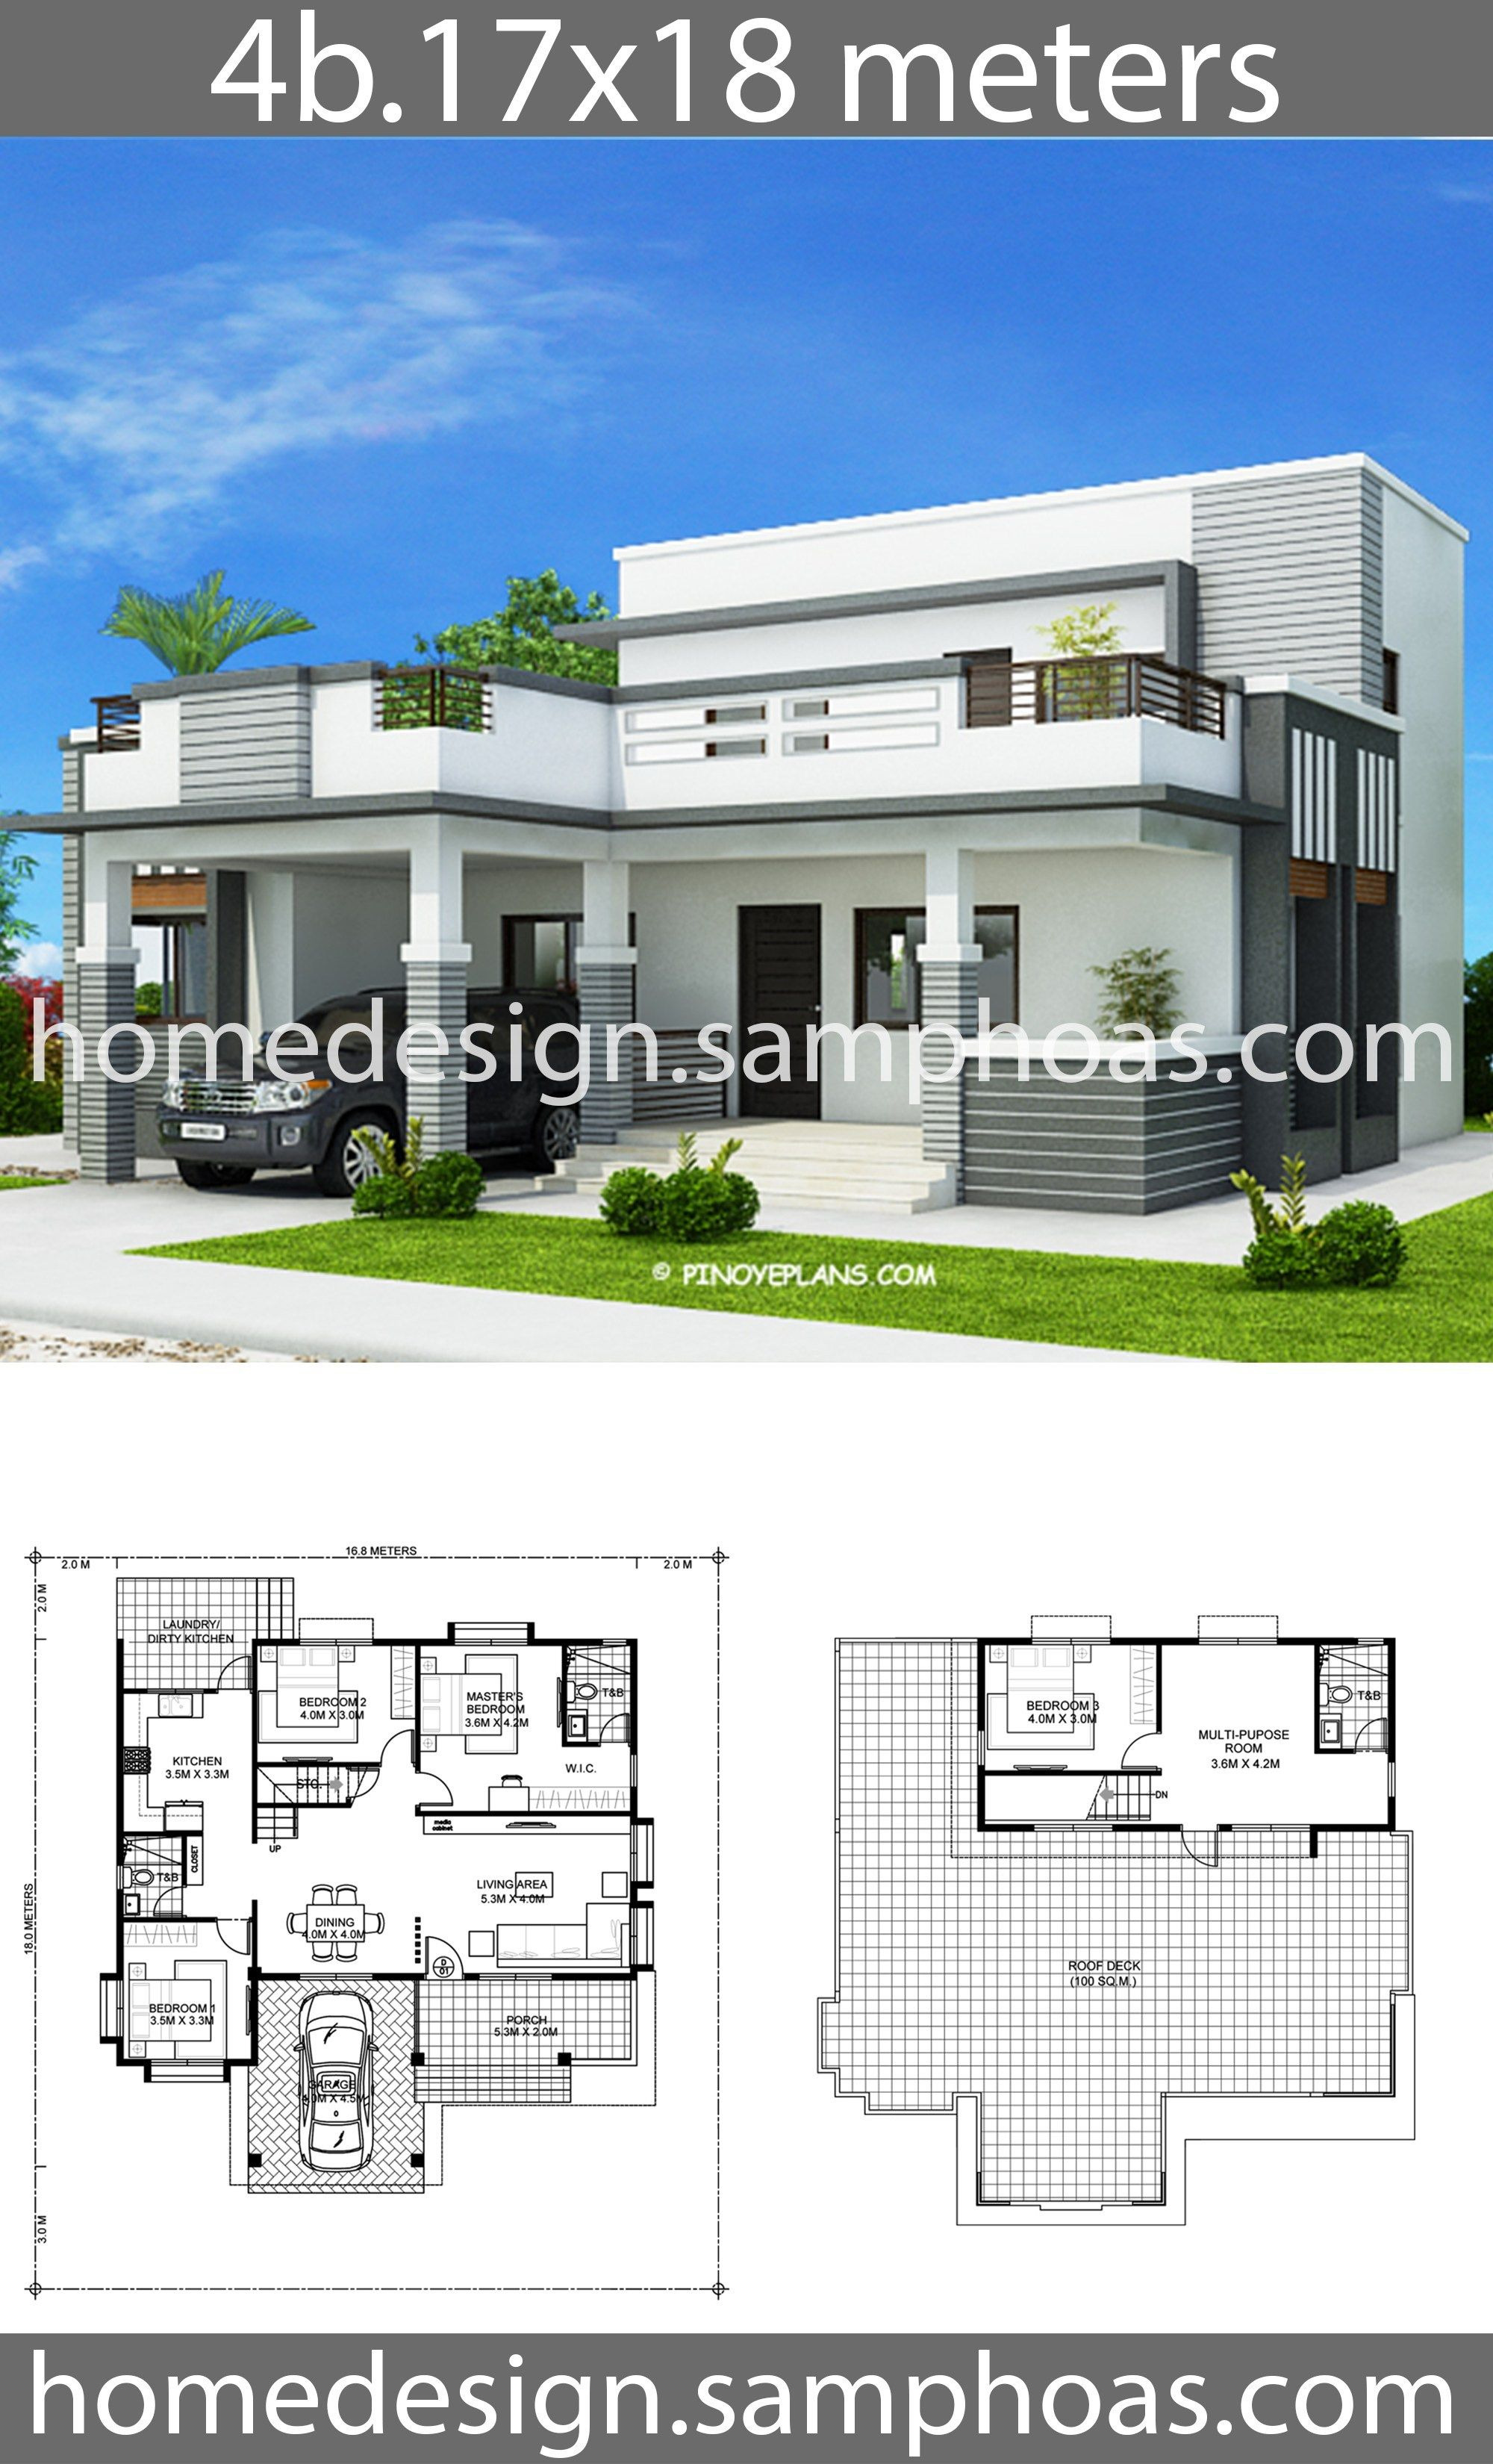 4 Bedroom Home Design Unique House Plans 17x18m with 4 Bedrooms